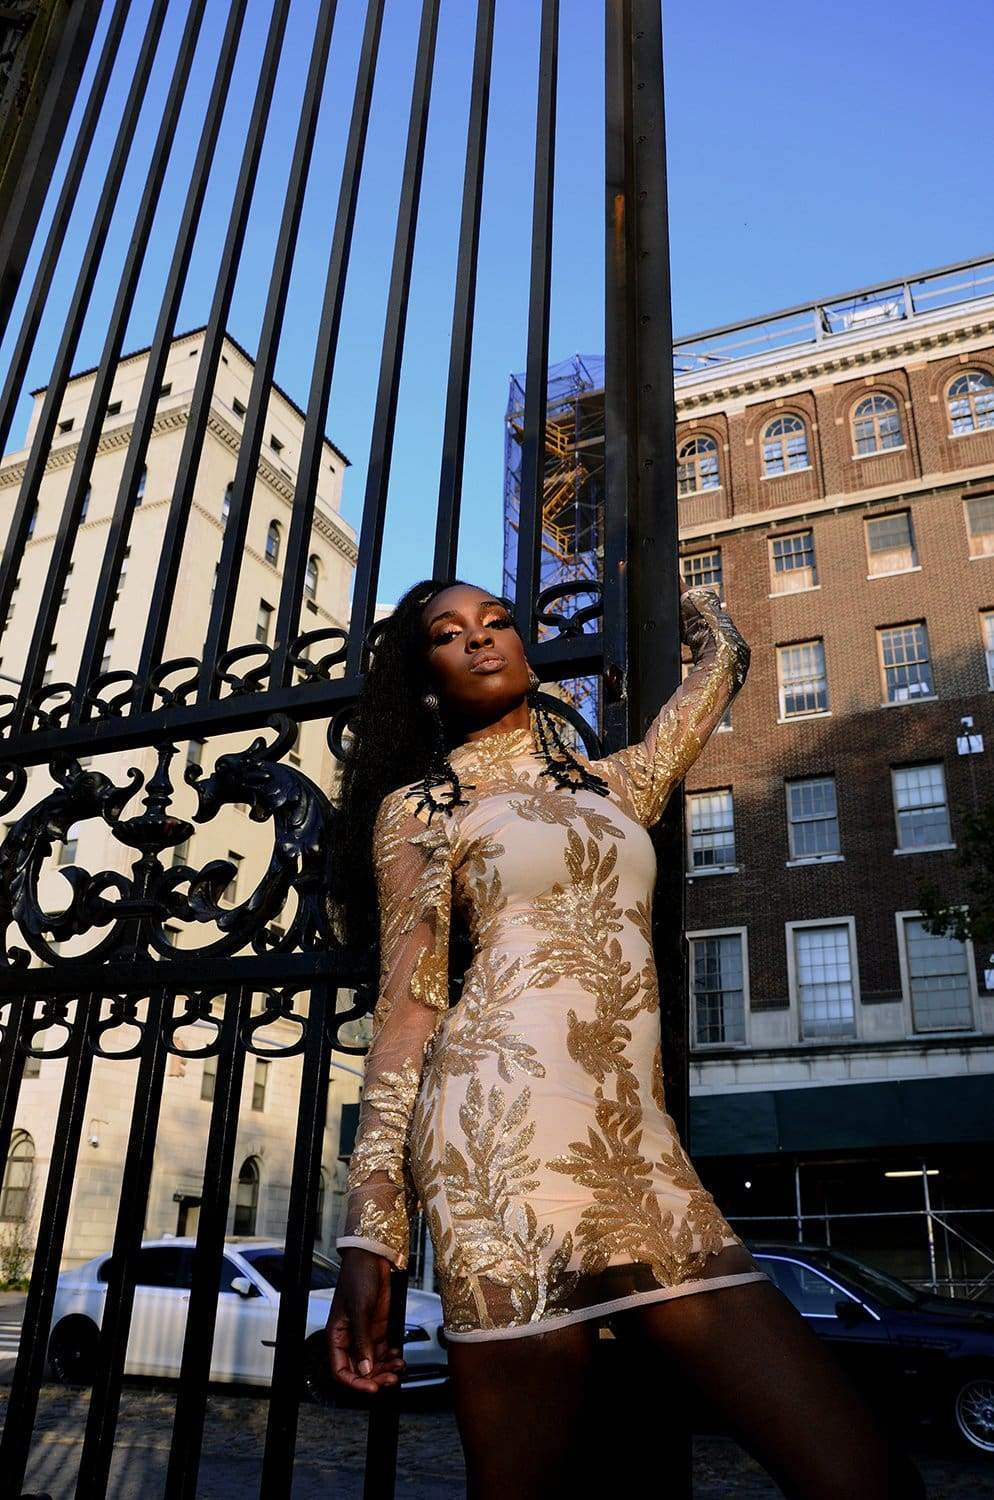 a person sitting on a bench in front of a fence